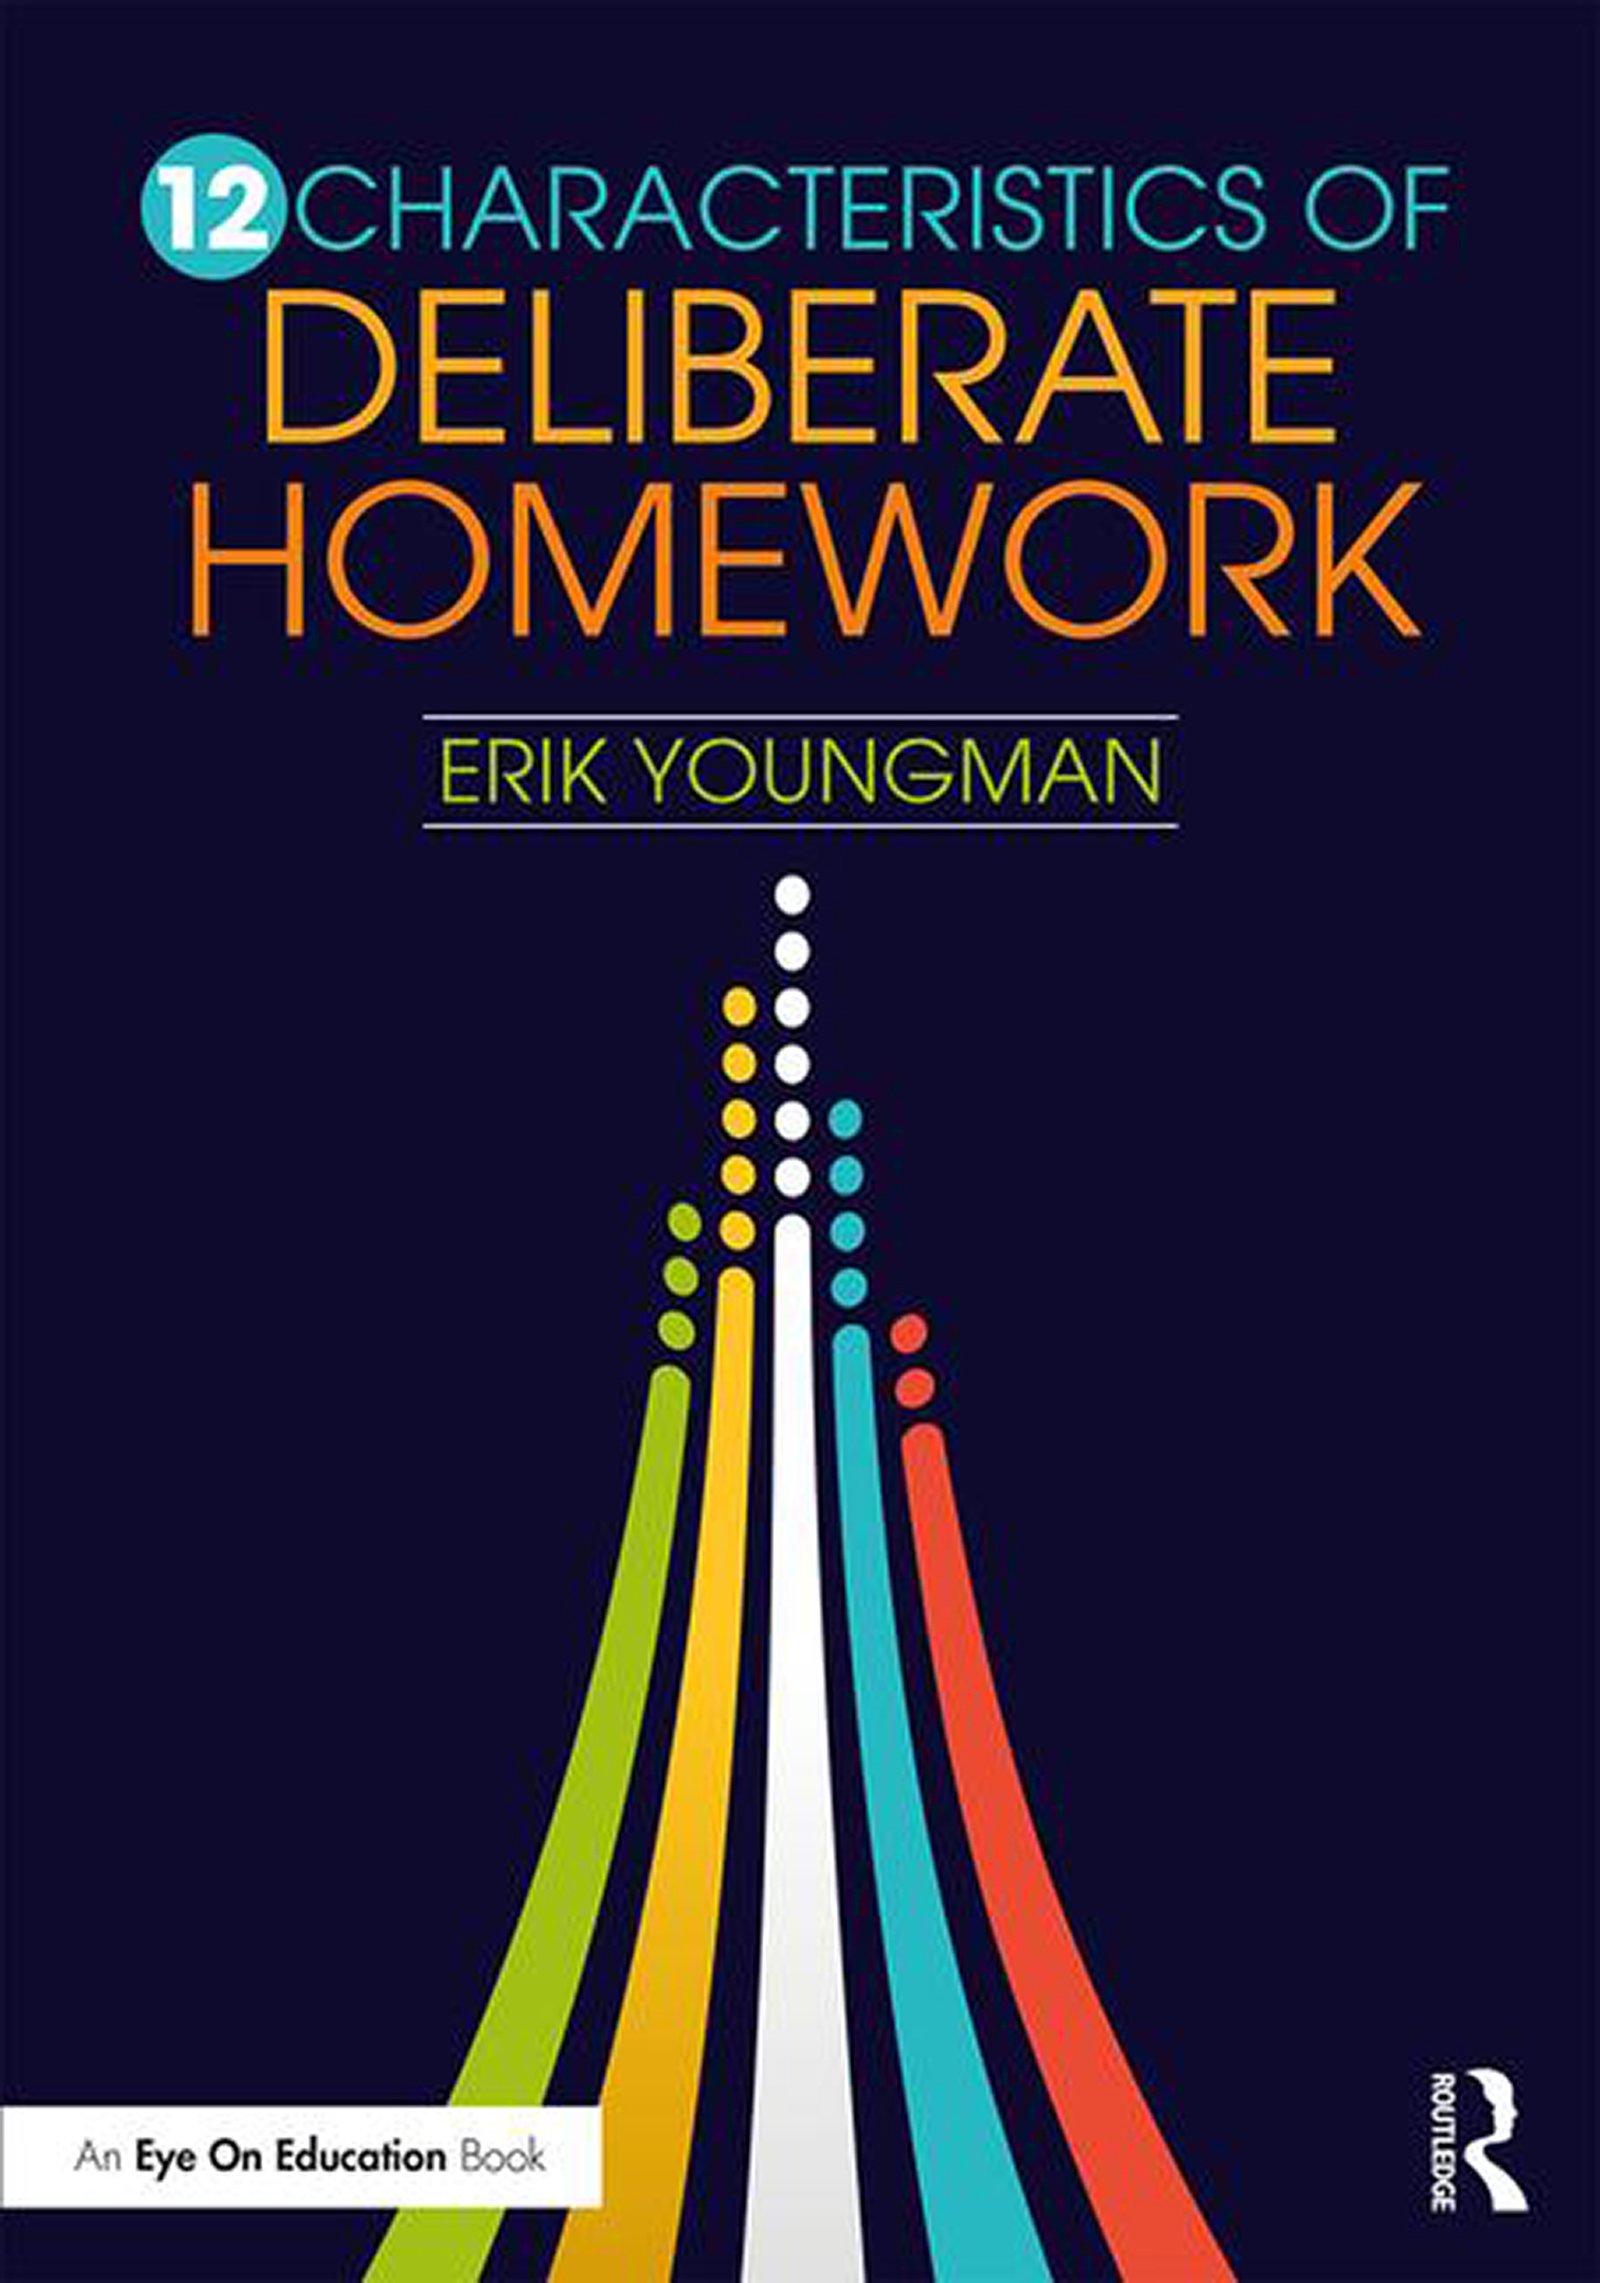 12 Characteristics of Deliberate Homework - 1st Edition - Erik Youngm